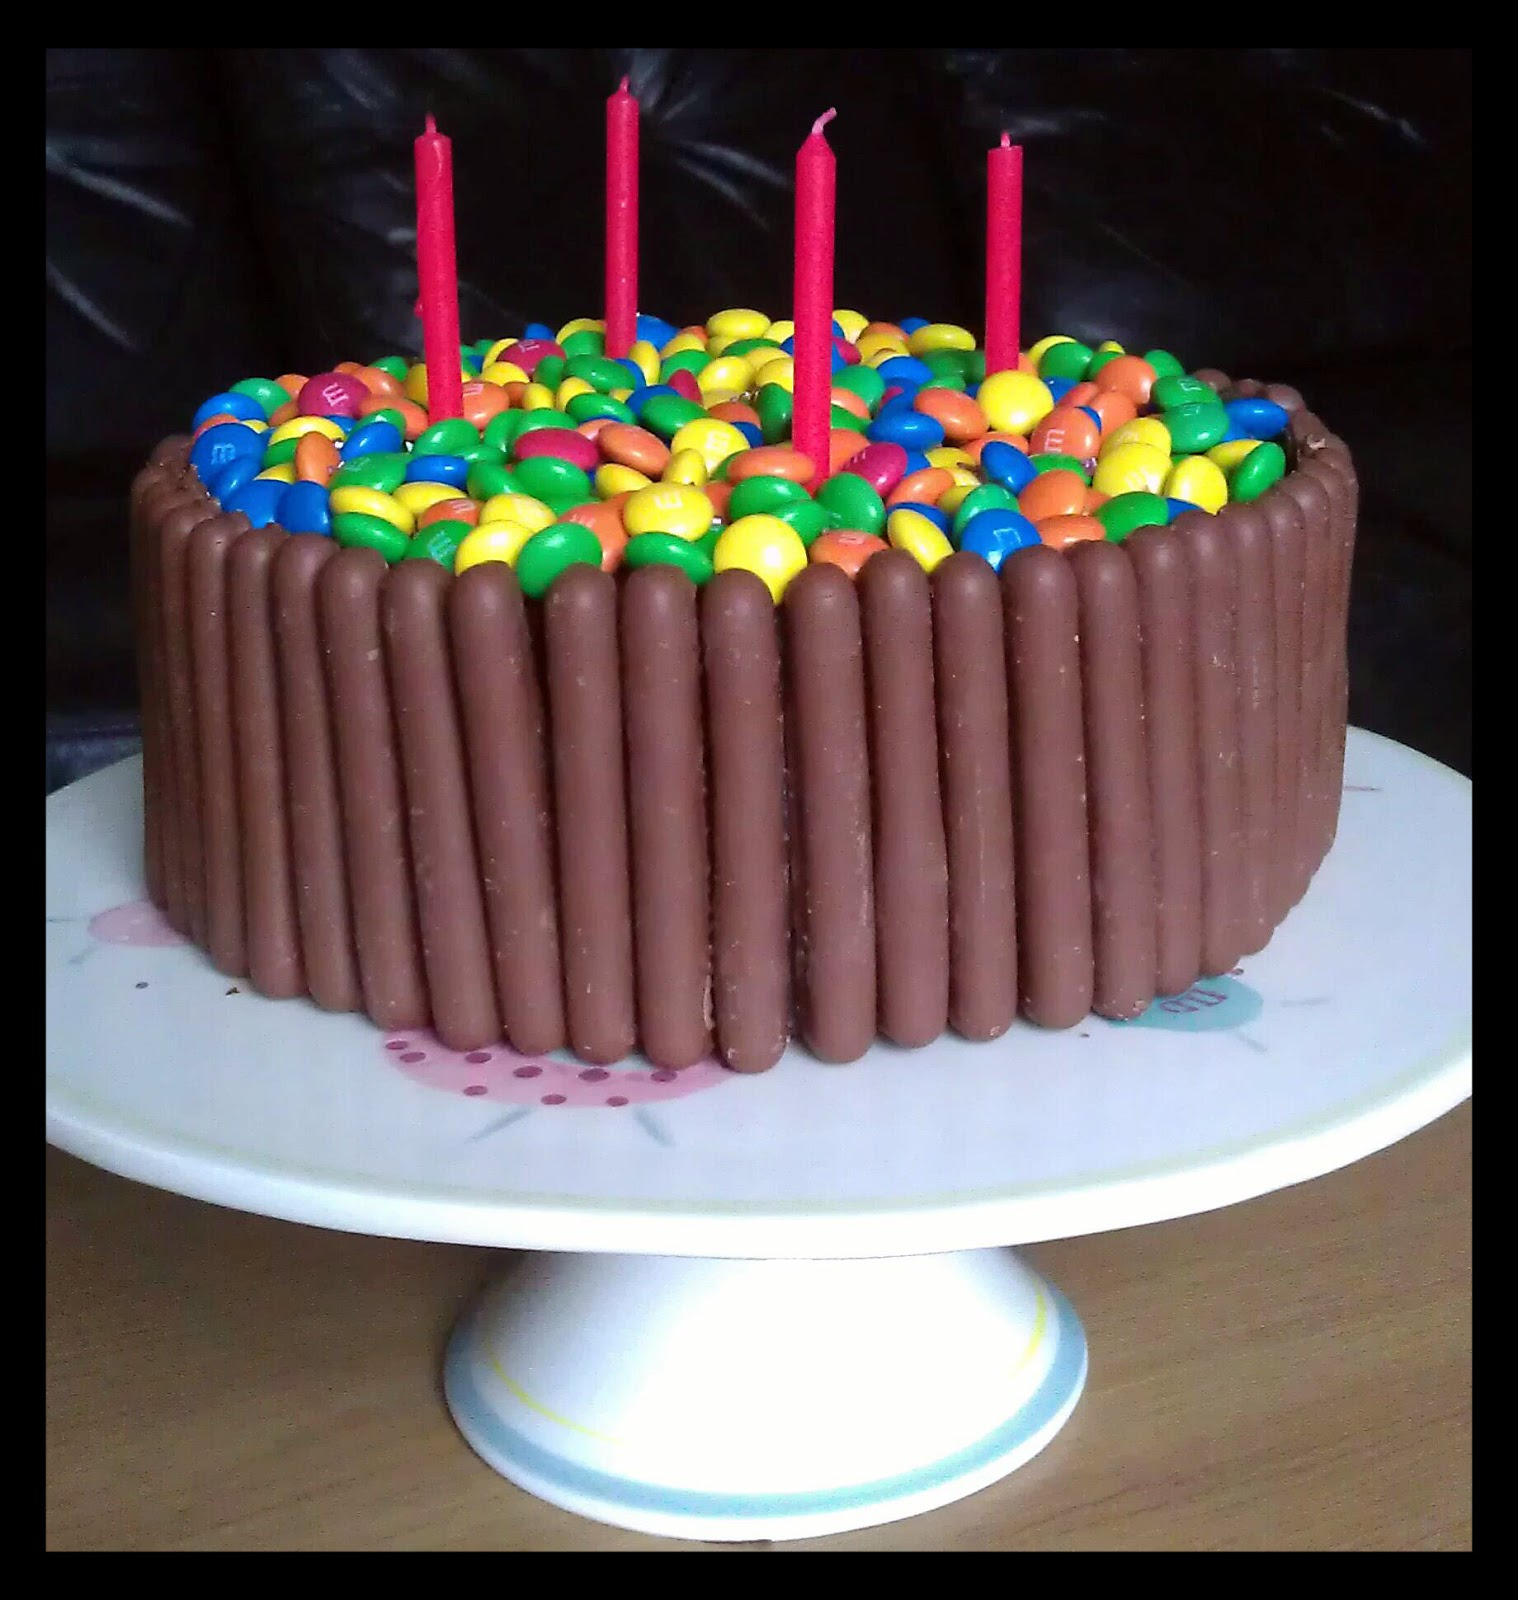 My Little Kitchen Chocolate Fingers and Smarties Birthday Cake